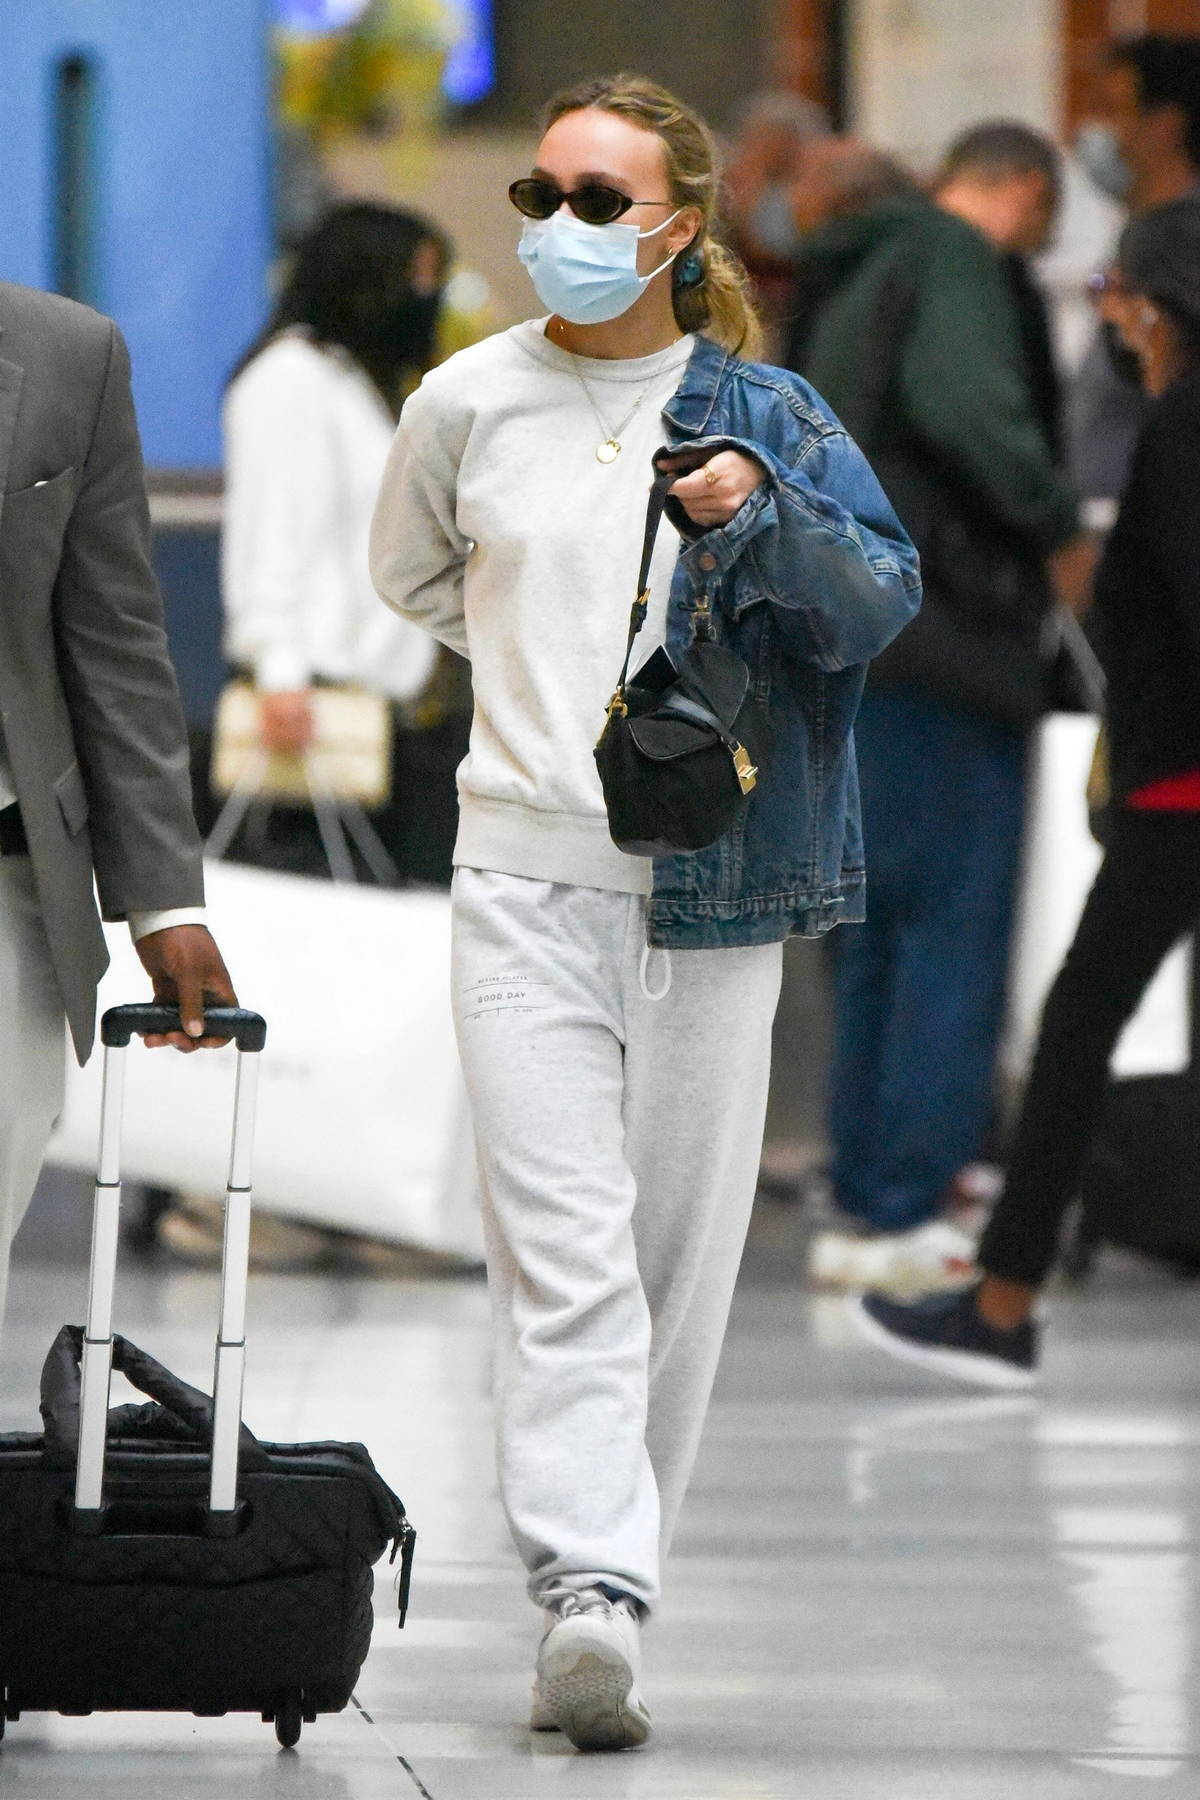 Lily-Rose Depp keeps it cozy in a sweatsuit and denim jacket as she arrives at JFK Airport in New York